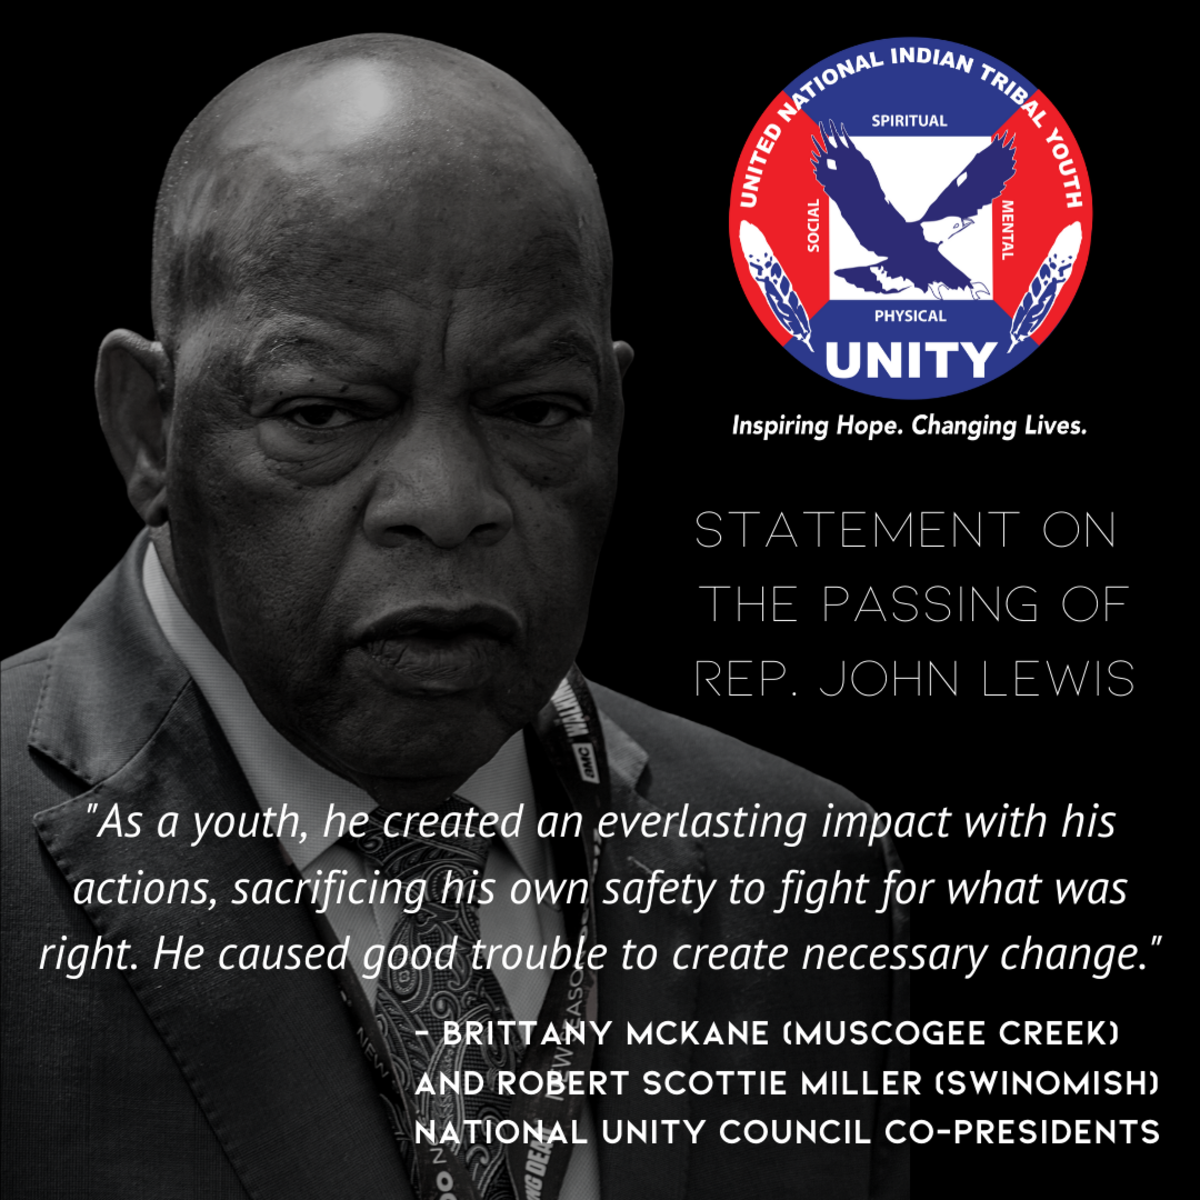 UNITY statement on the passing of John Lewis. (Graphic courtesy of UNITY)